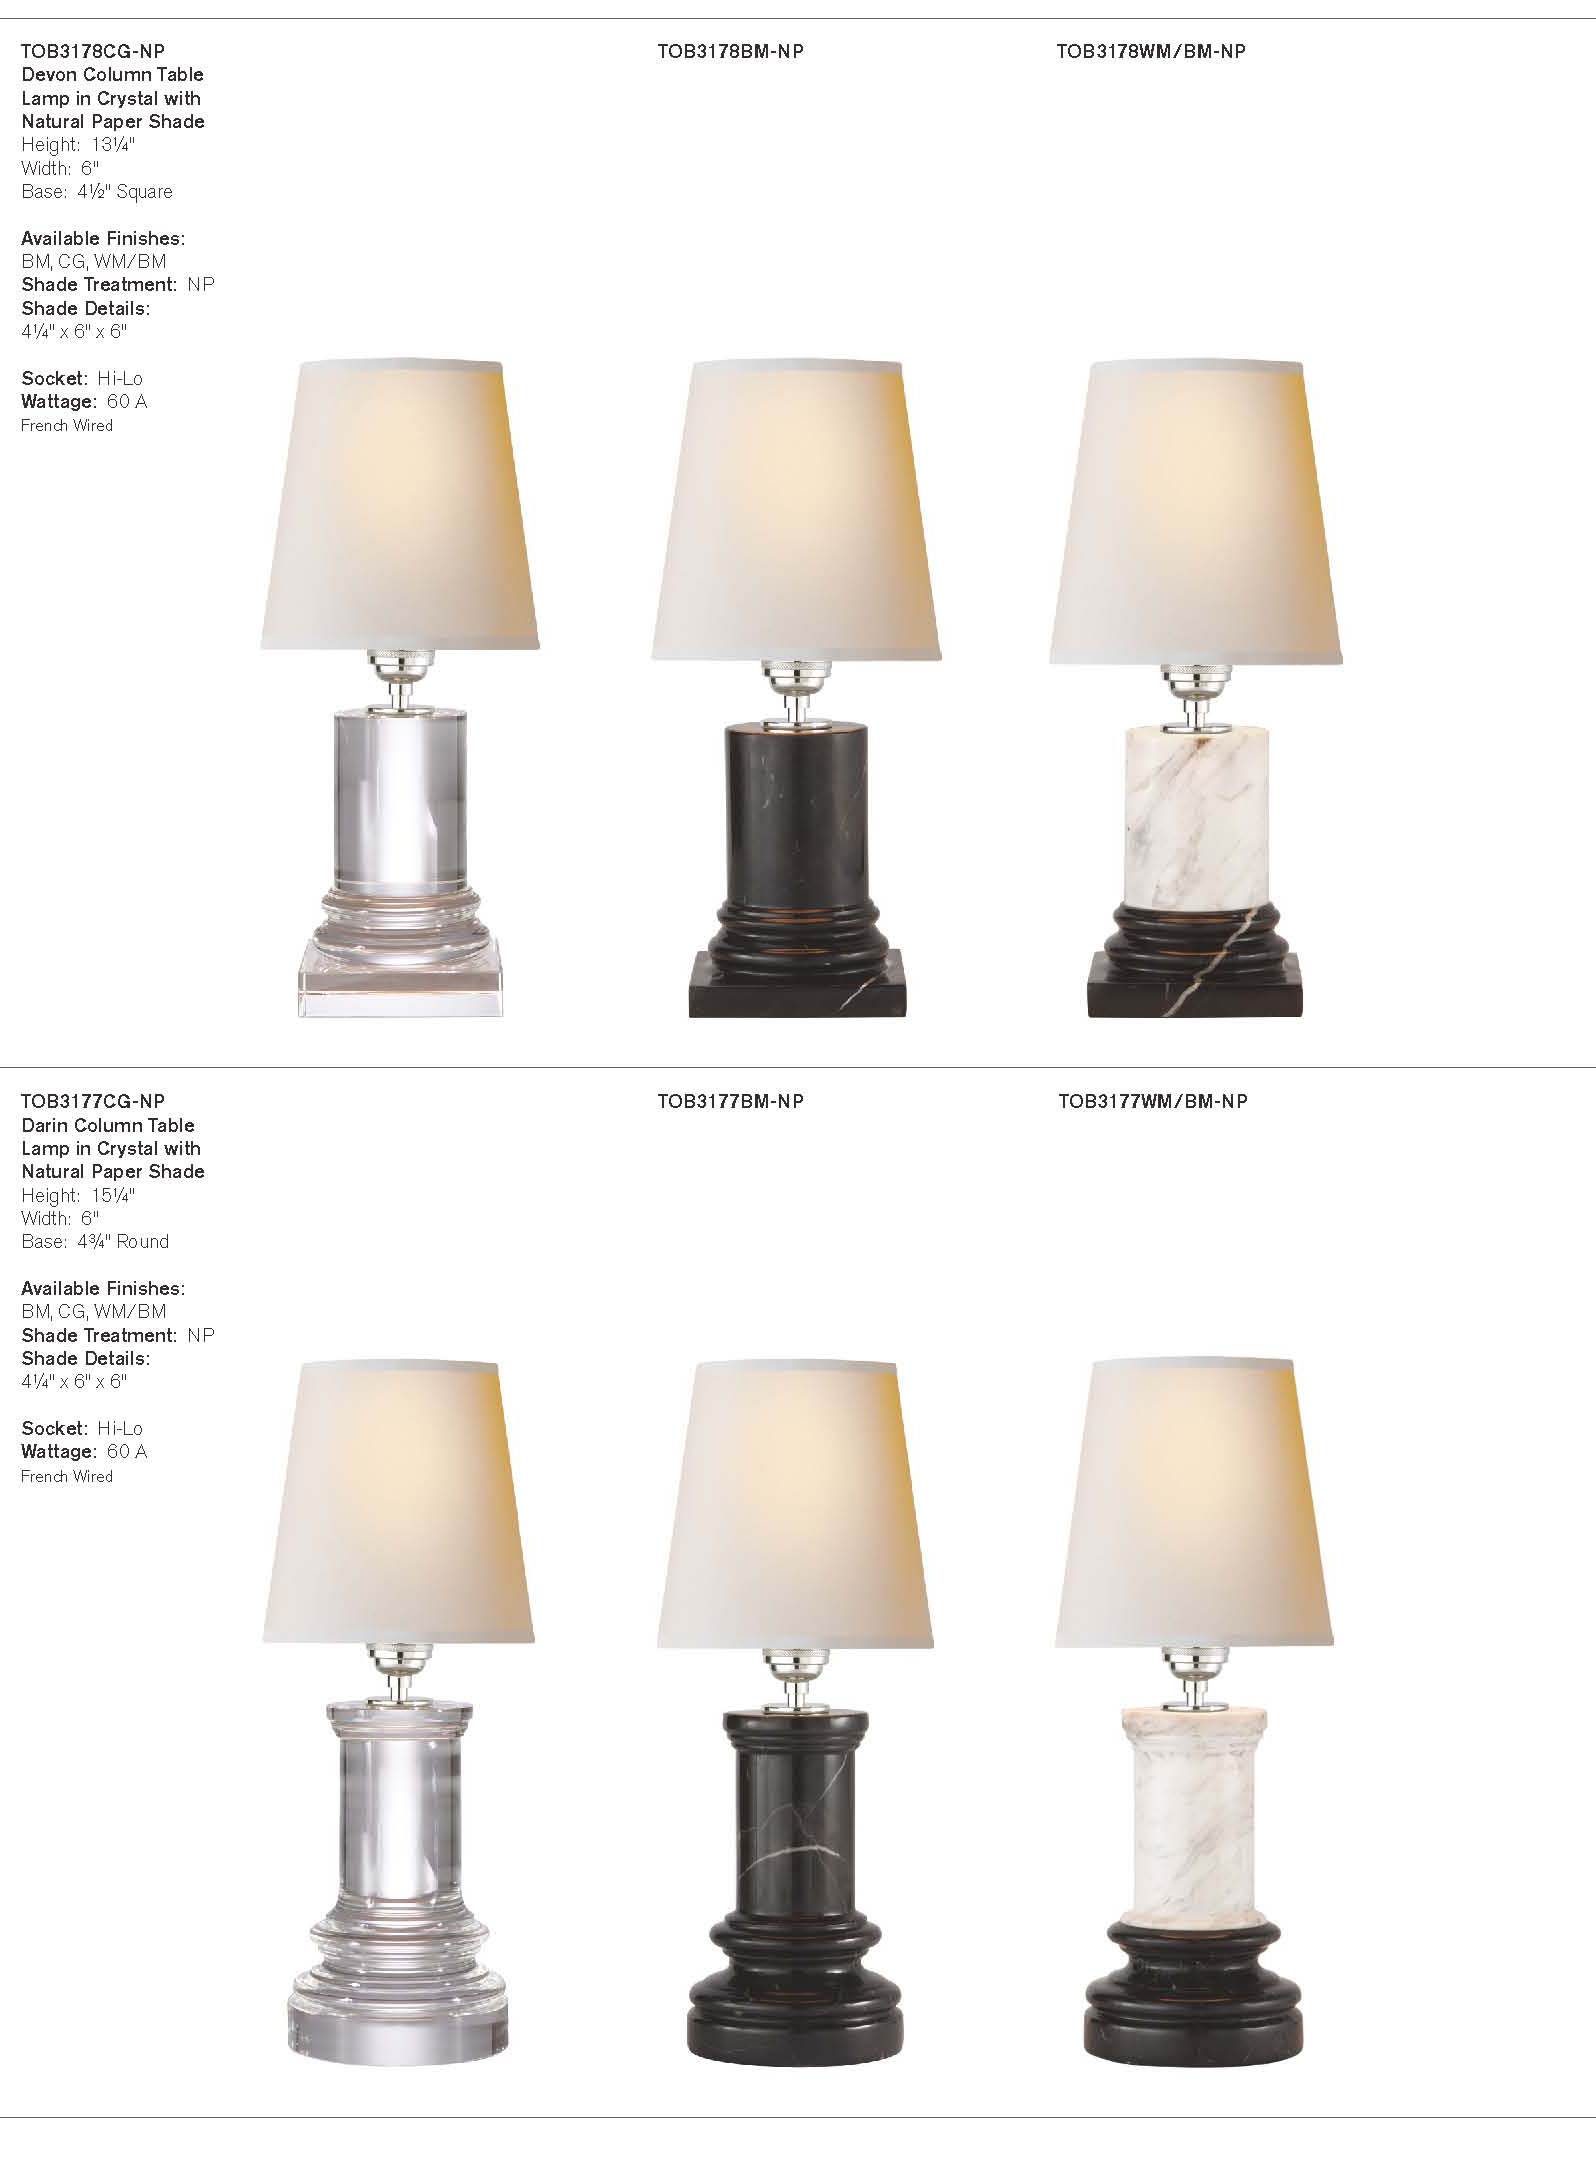 Forum on this topic: 6 Modern Table Lamps, 6-modern-table-lamps/